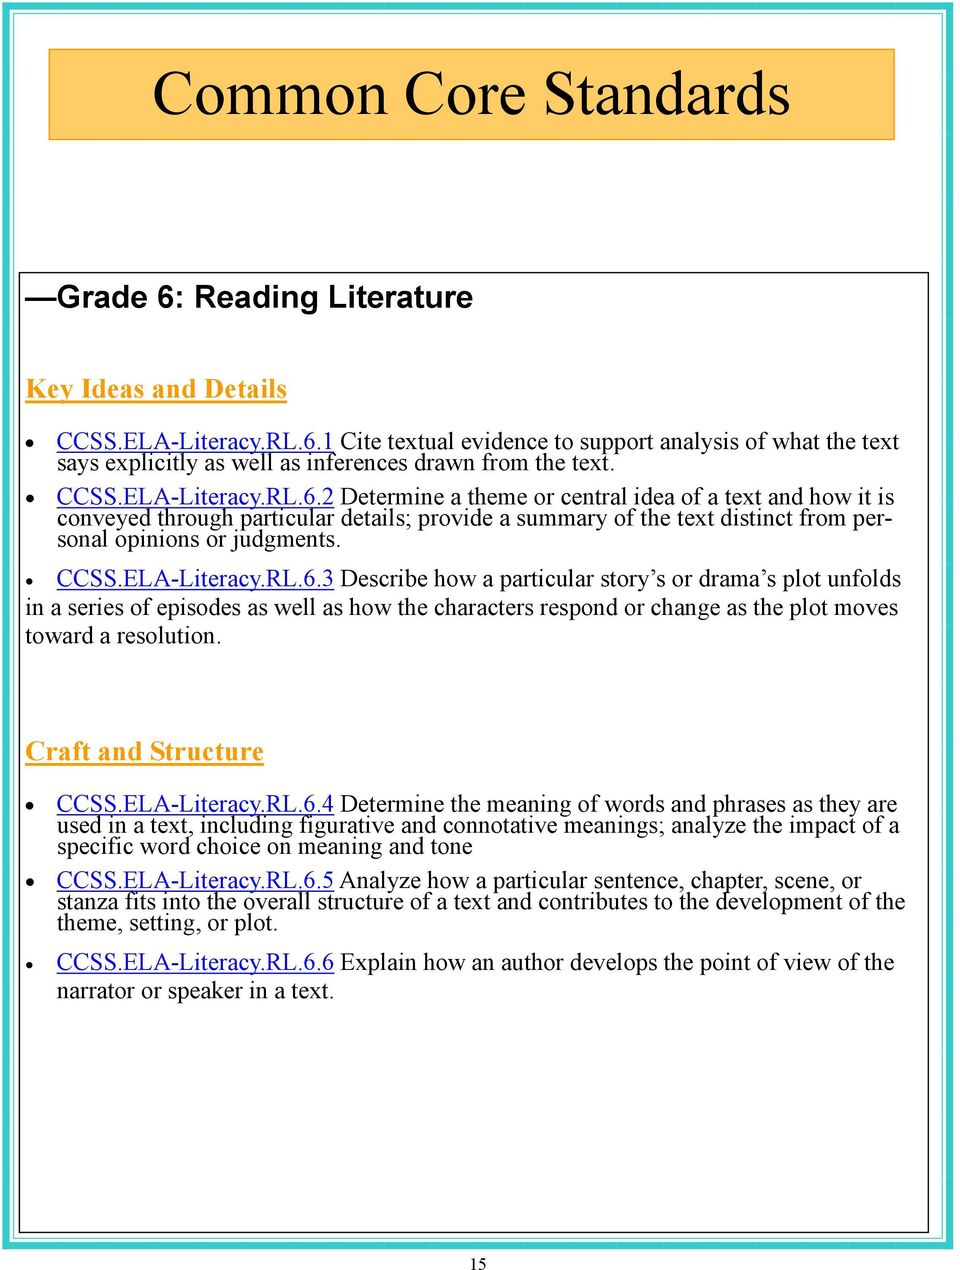 CCSS.ELA-Literacy.RL.6.3 Describe how a particular story s or drama s plot unfolds in a series of episodes as well as how the characters respond or change as the plot moves toward a resolution.